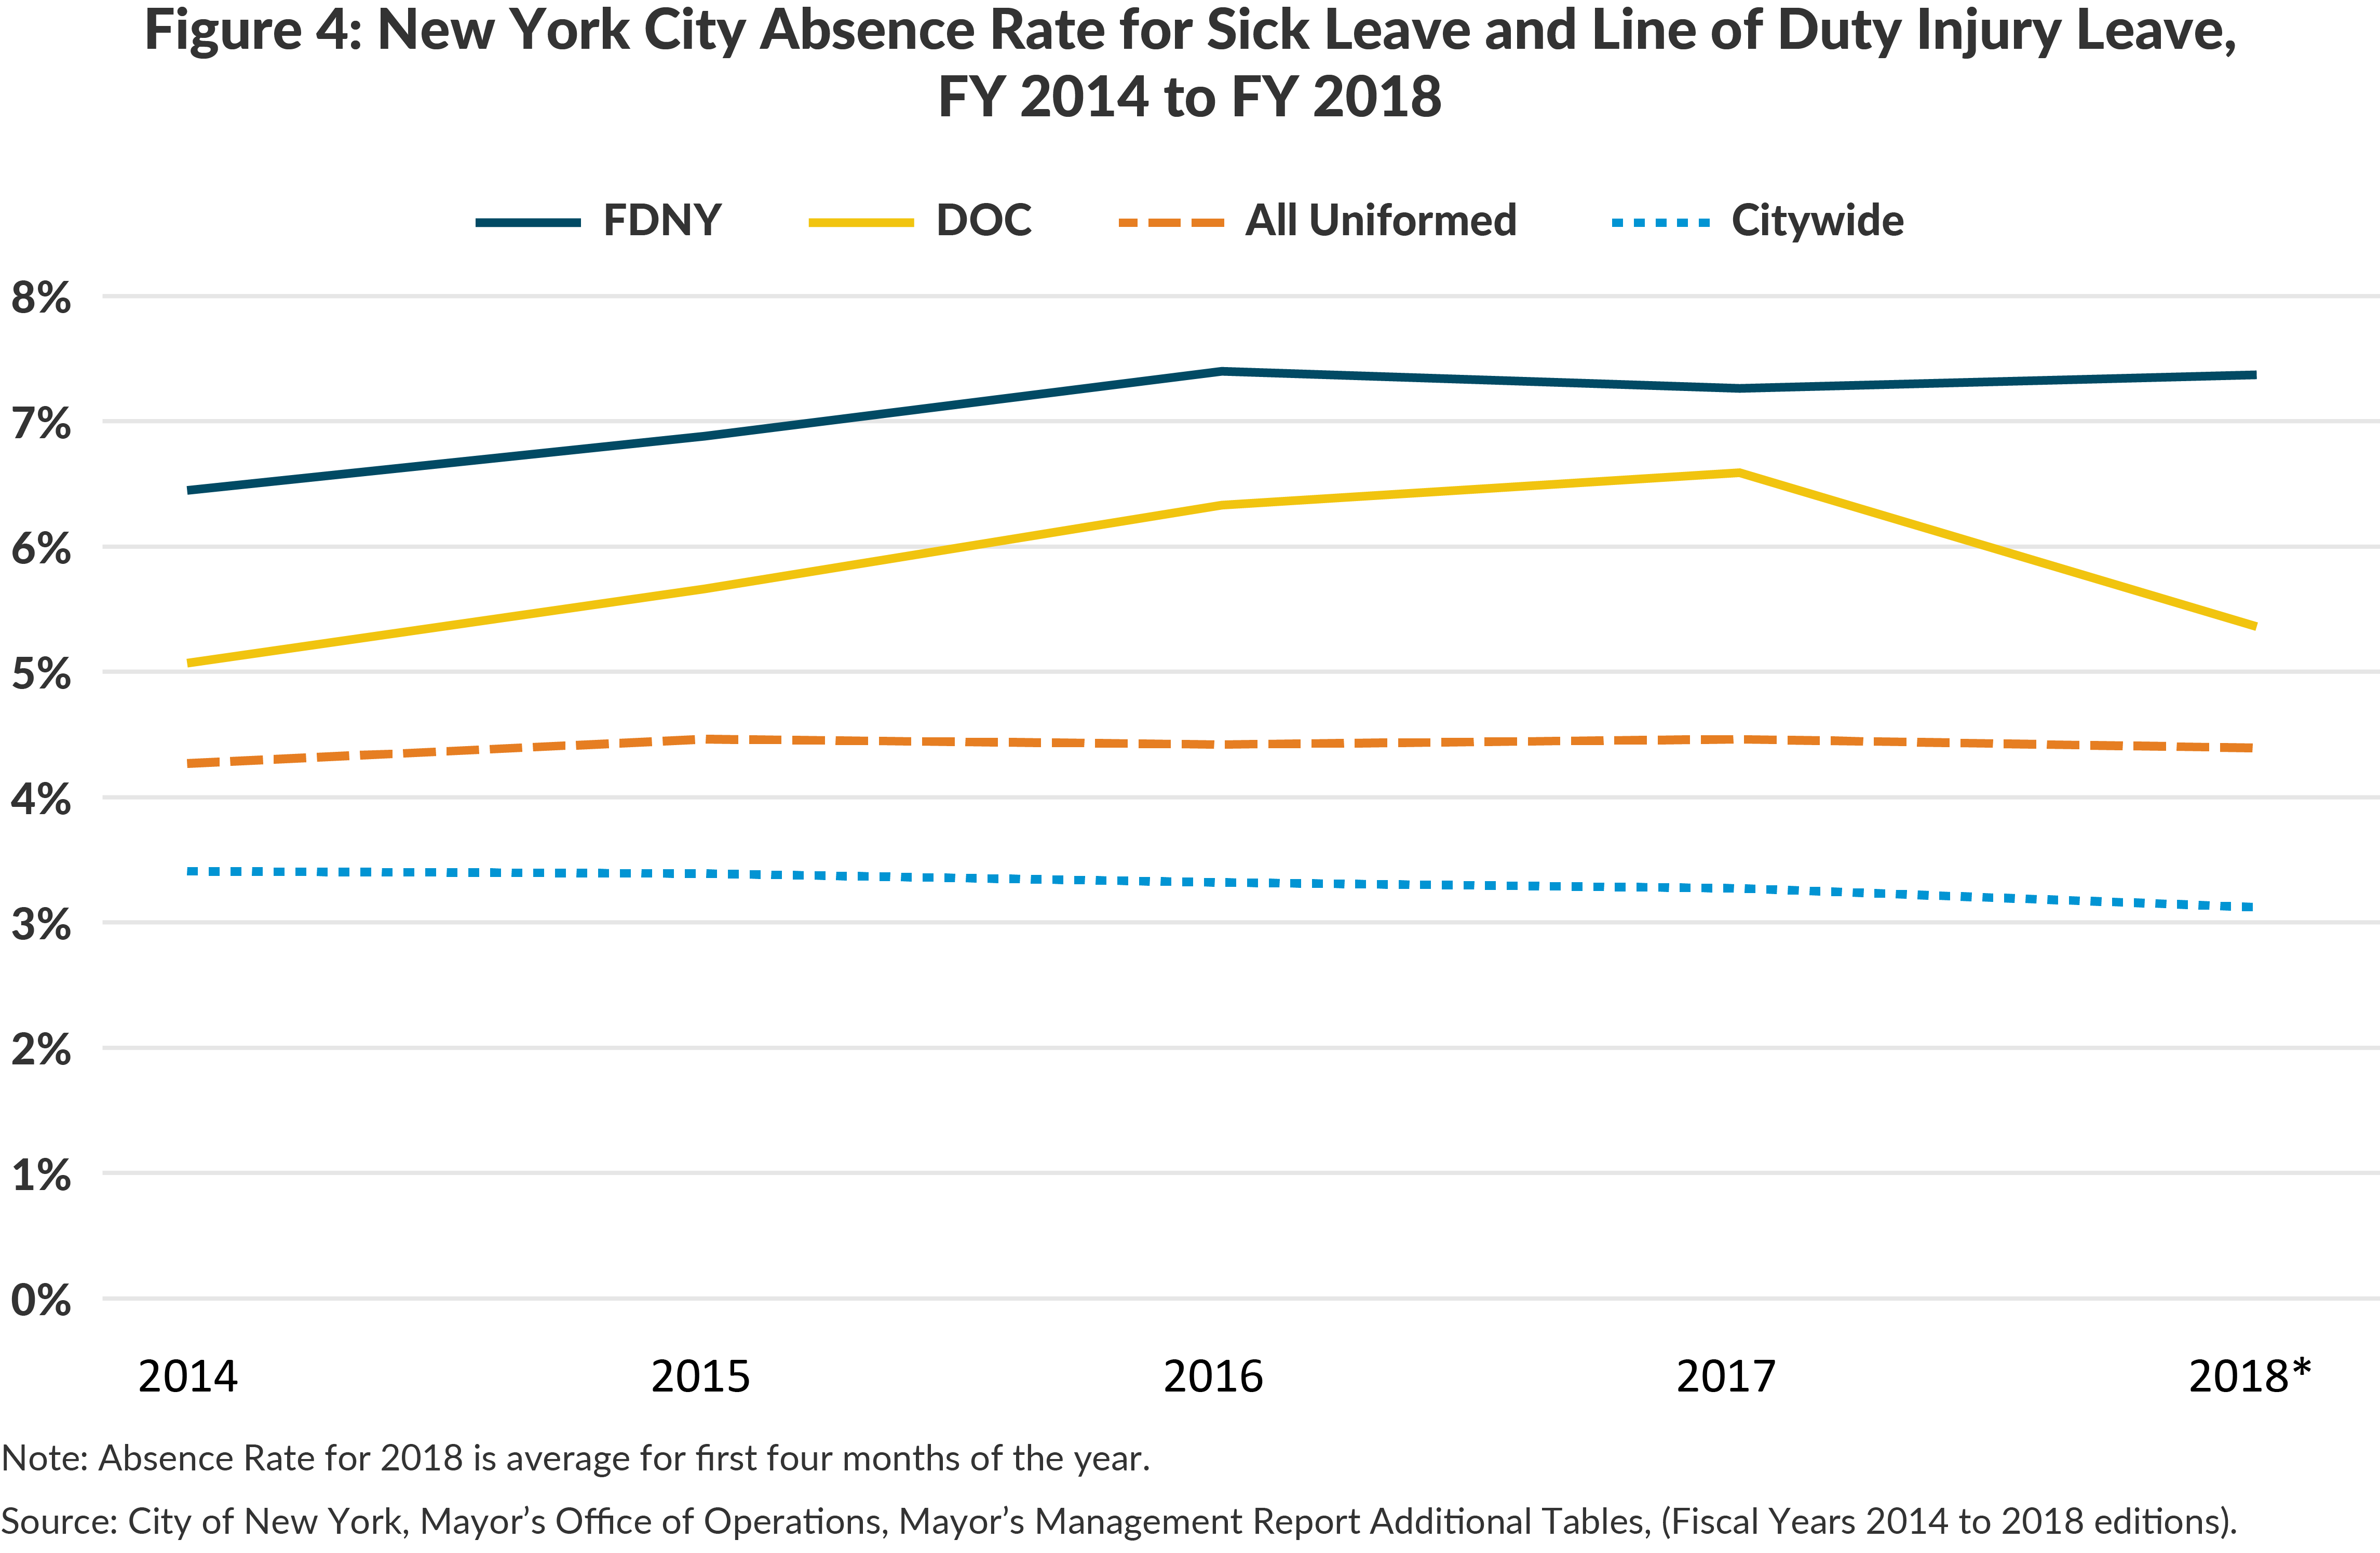 Figure 4: New York City Absence Rate for Sick Leave and Line of Duty Injury Leave, FY 2014 to FY 2018